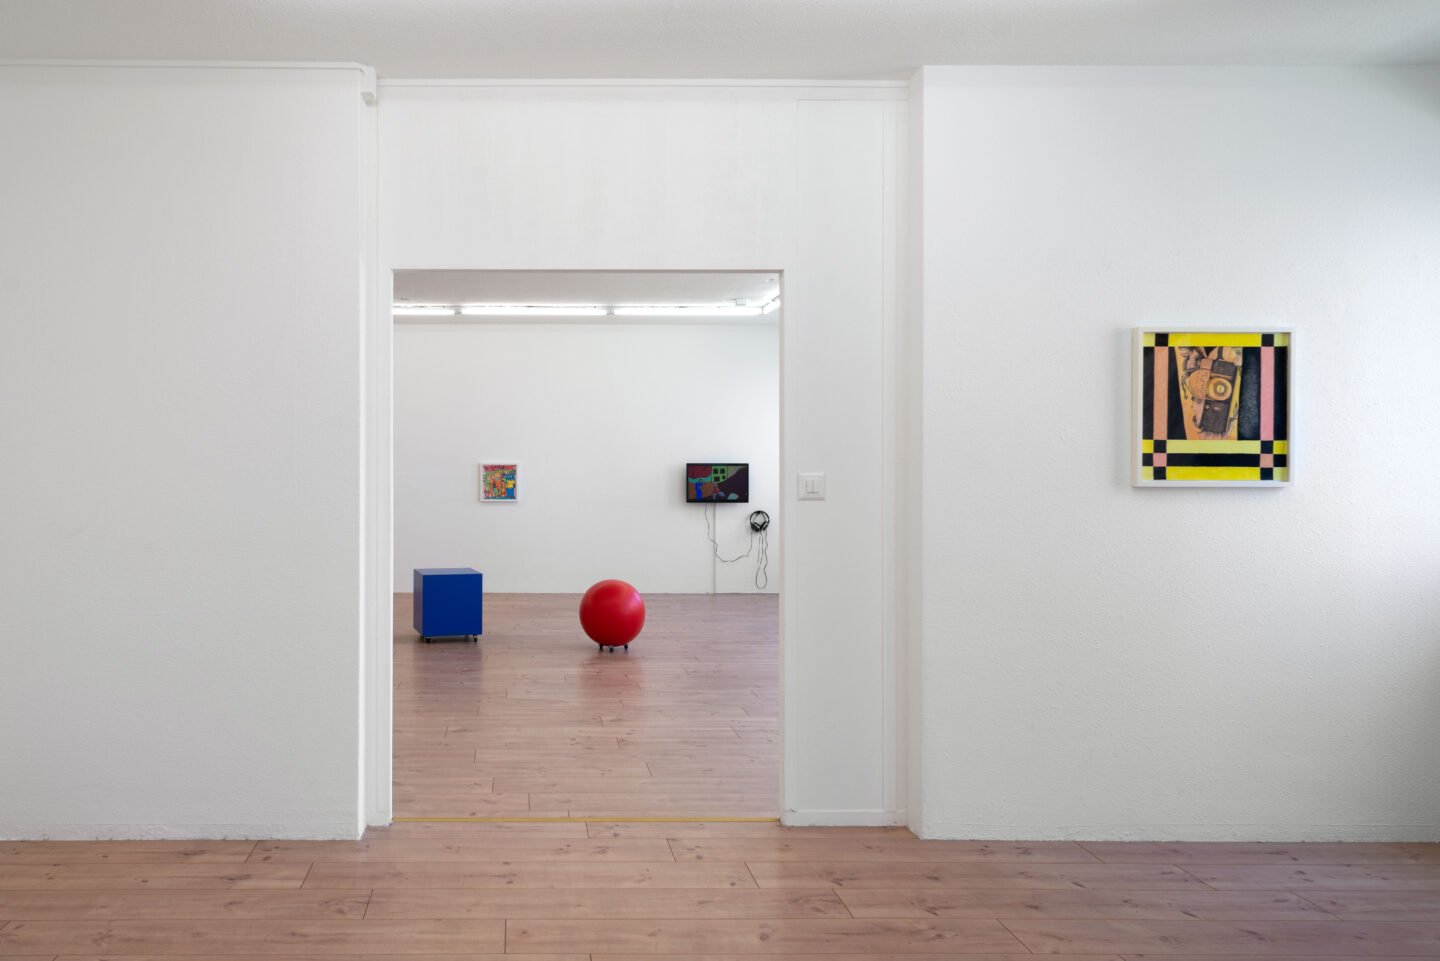 Exhibition View Keren Cytter Soloshow «Size Matters» at HAMLET, Oerlikon, Zurich / Photo: Flavio Karrer / Courtesy: the artist and HAMLET